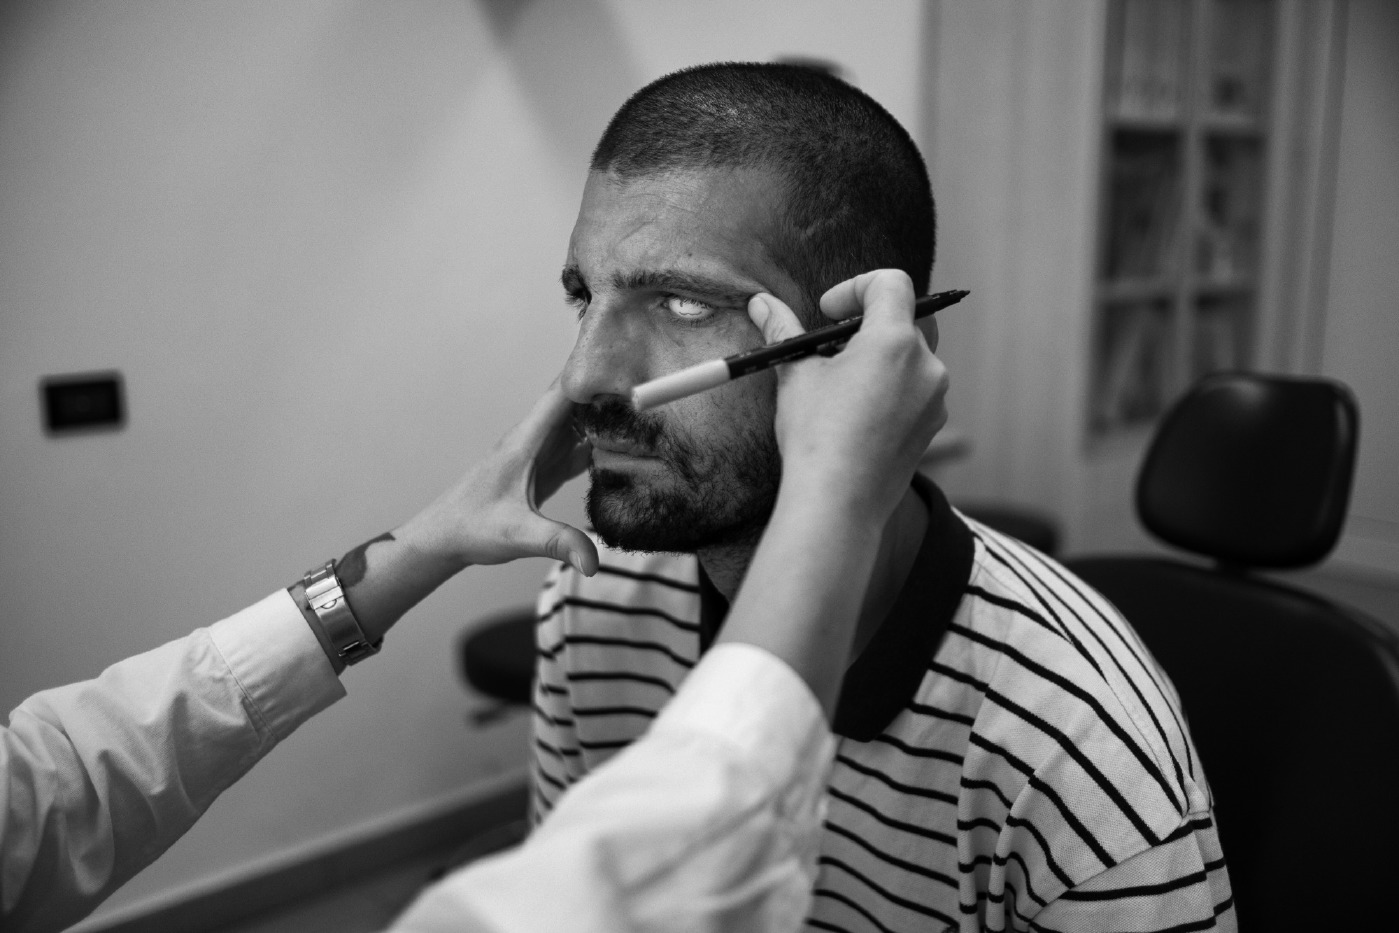 34-year-old Adis Smajic is being examined by the ophthalmologist, who measures the exact position of his iris in order to make his final prosthetic eye. Rome, Italy 2016. © Matteo Bastianelli